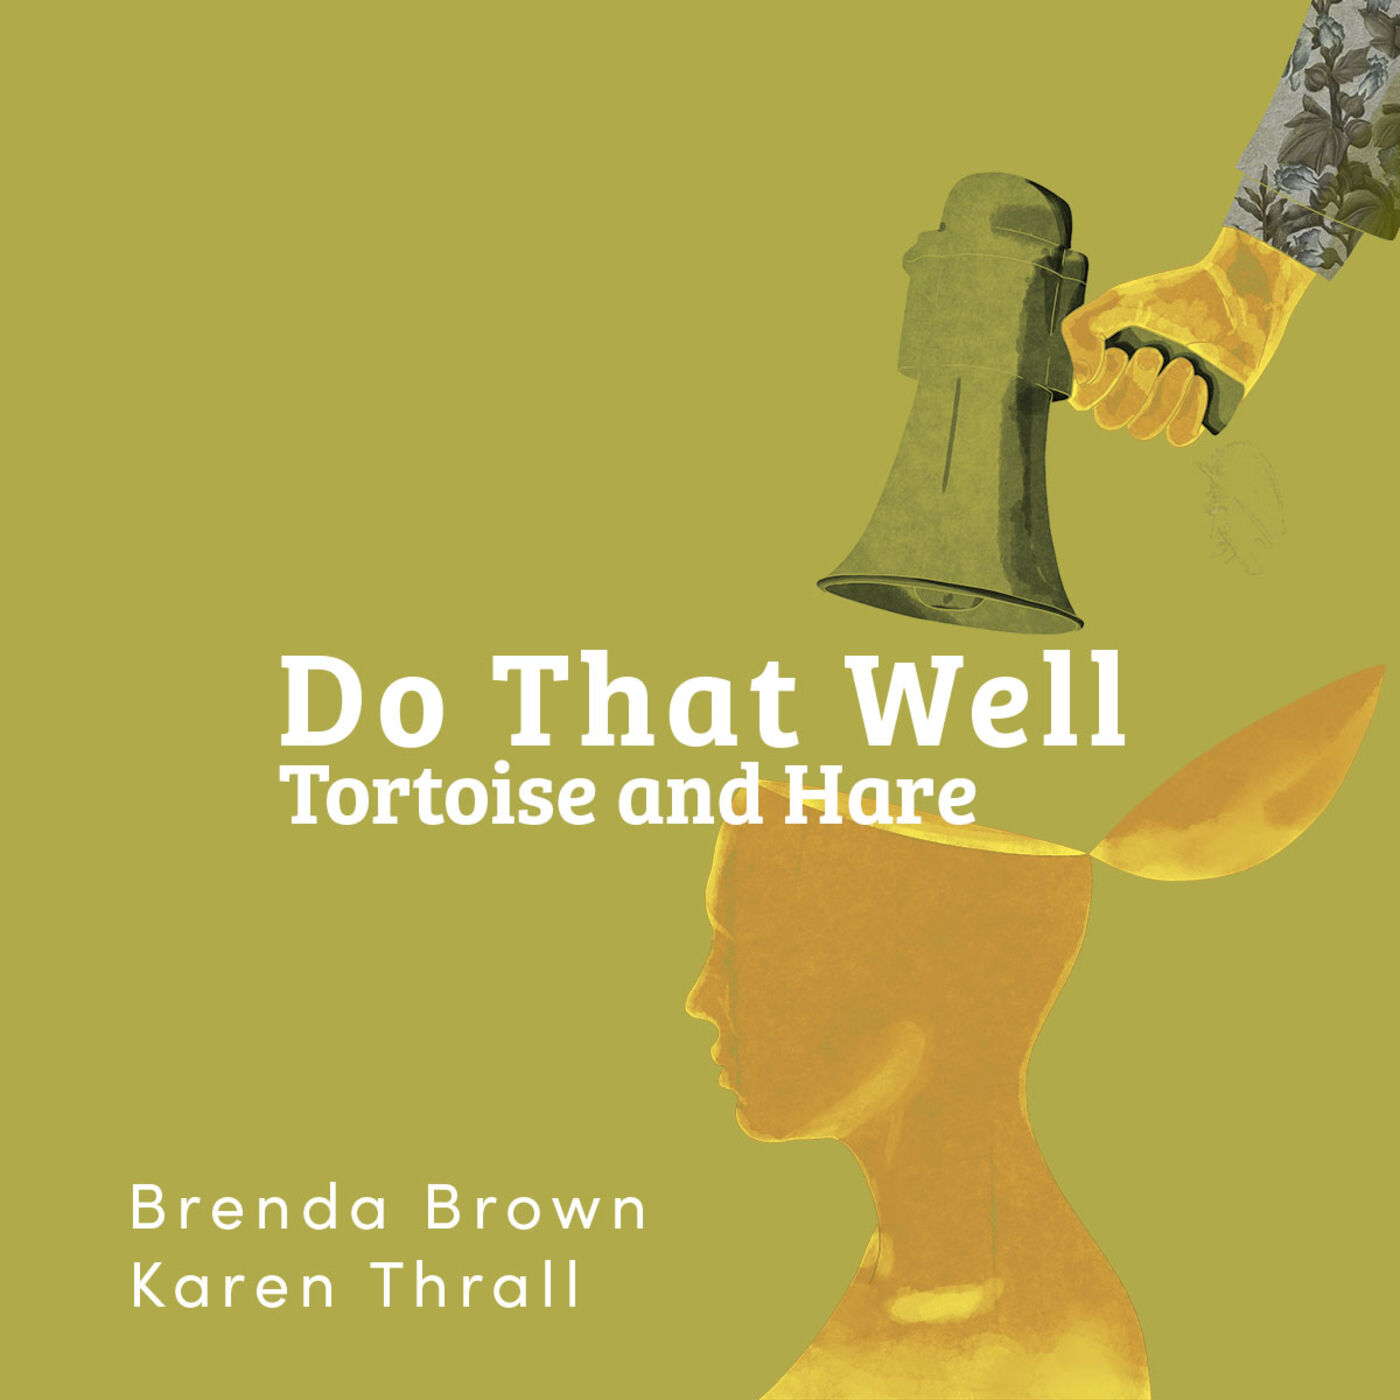 Do That Well: Tortoise and Hare